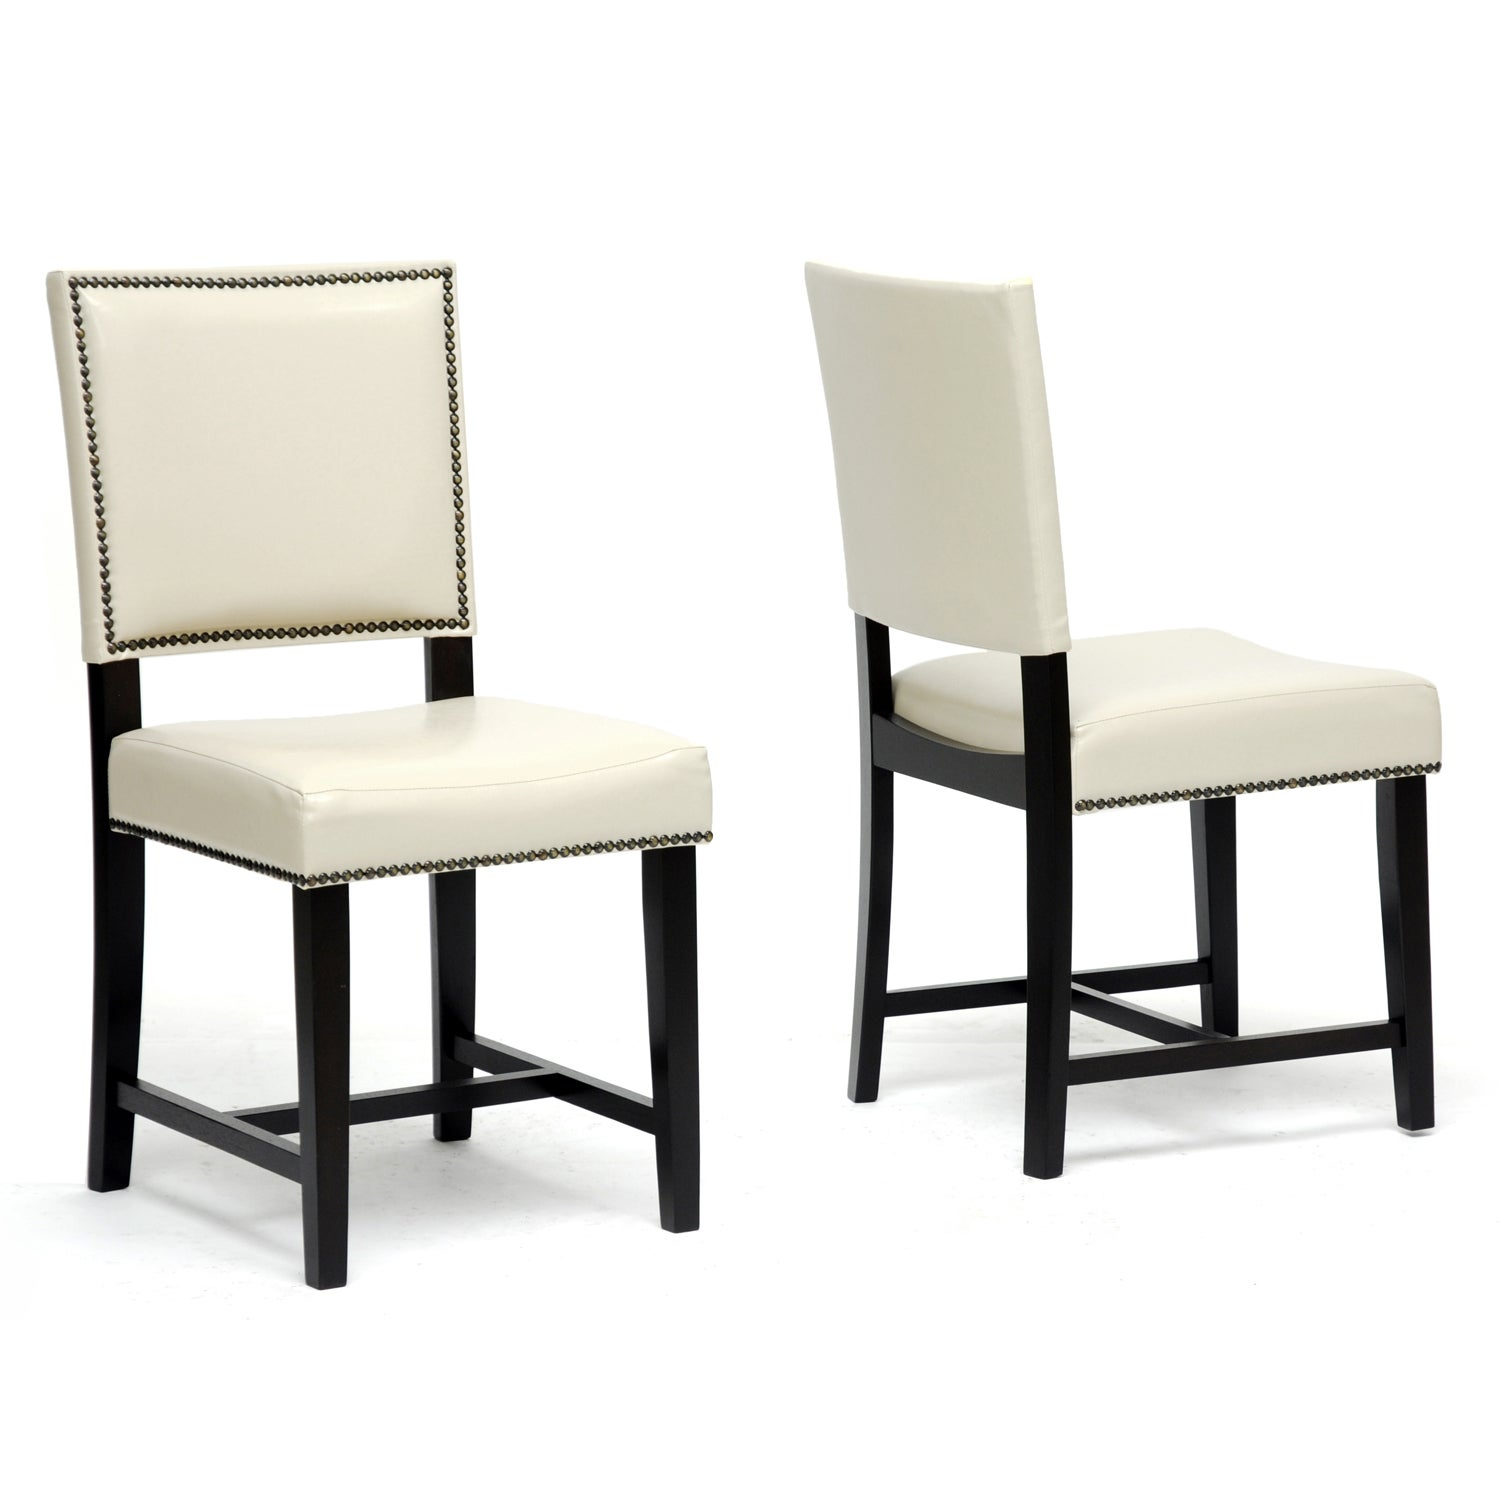 Baxton studio dining chairs overstock shopping the for 2 dining room chairs